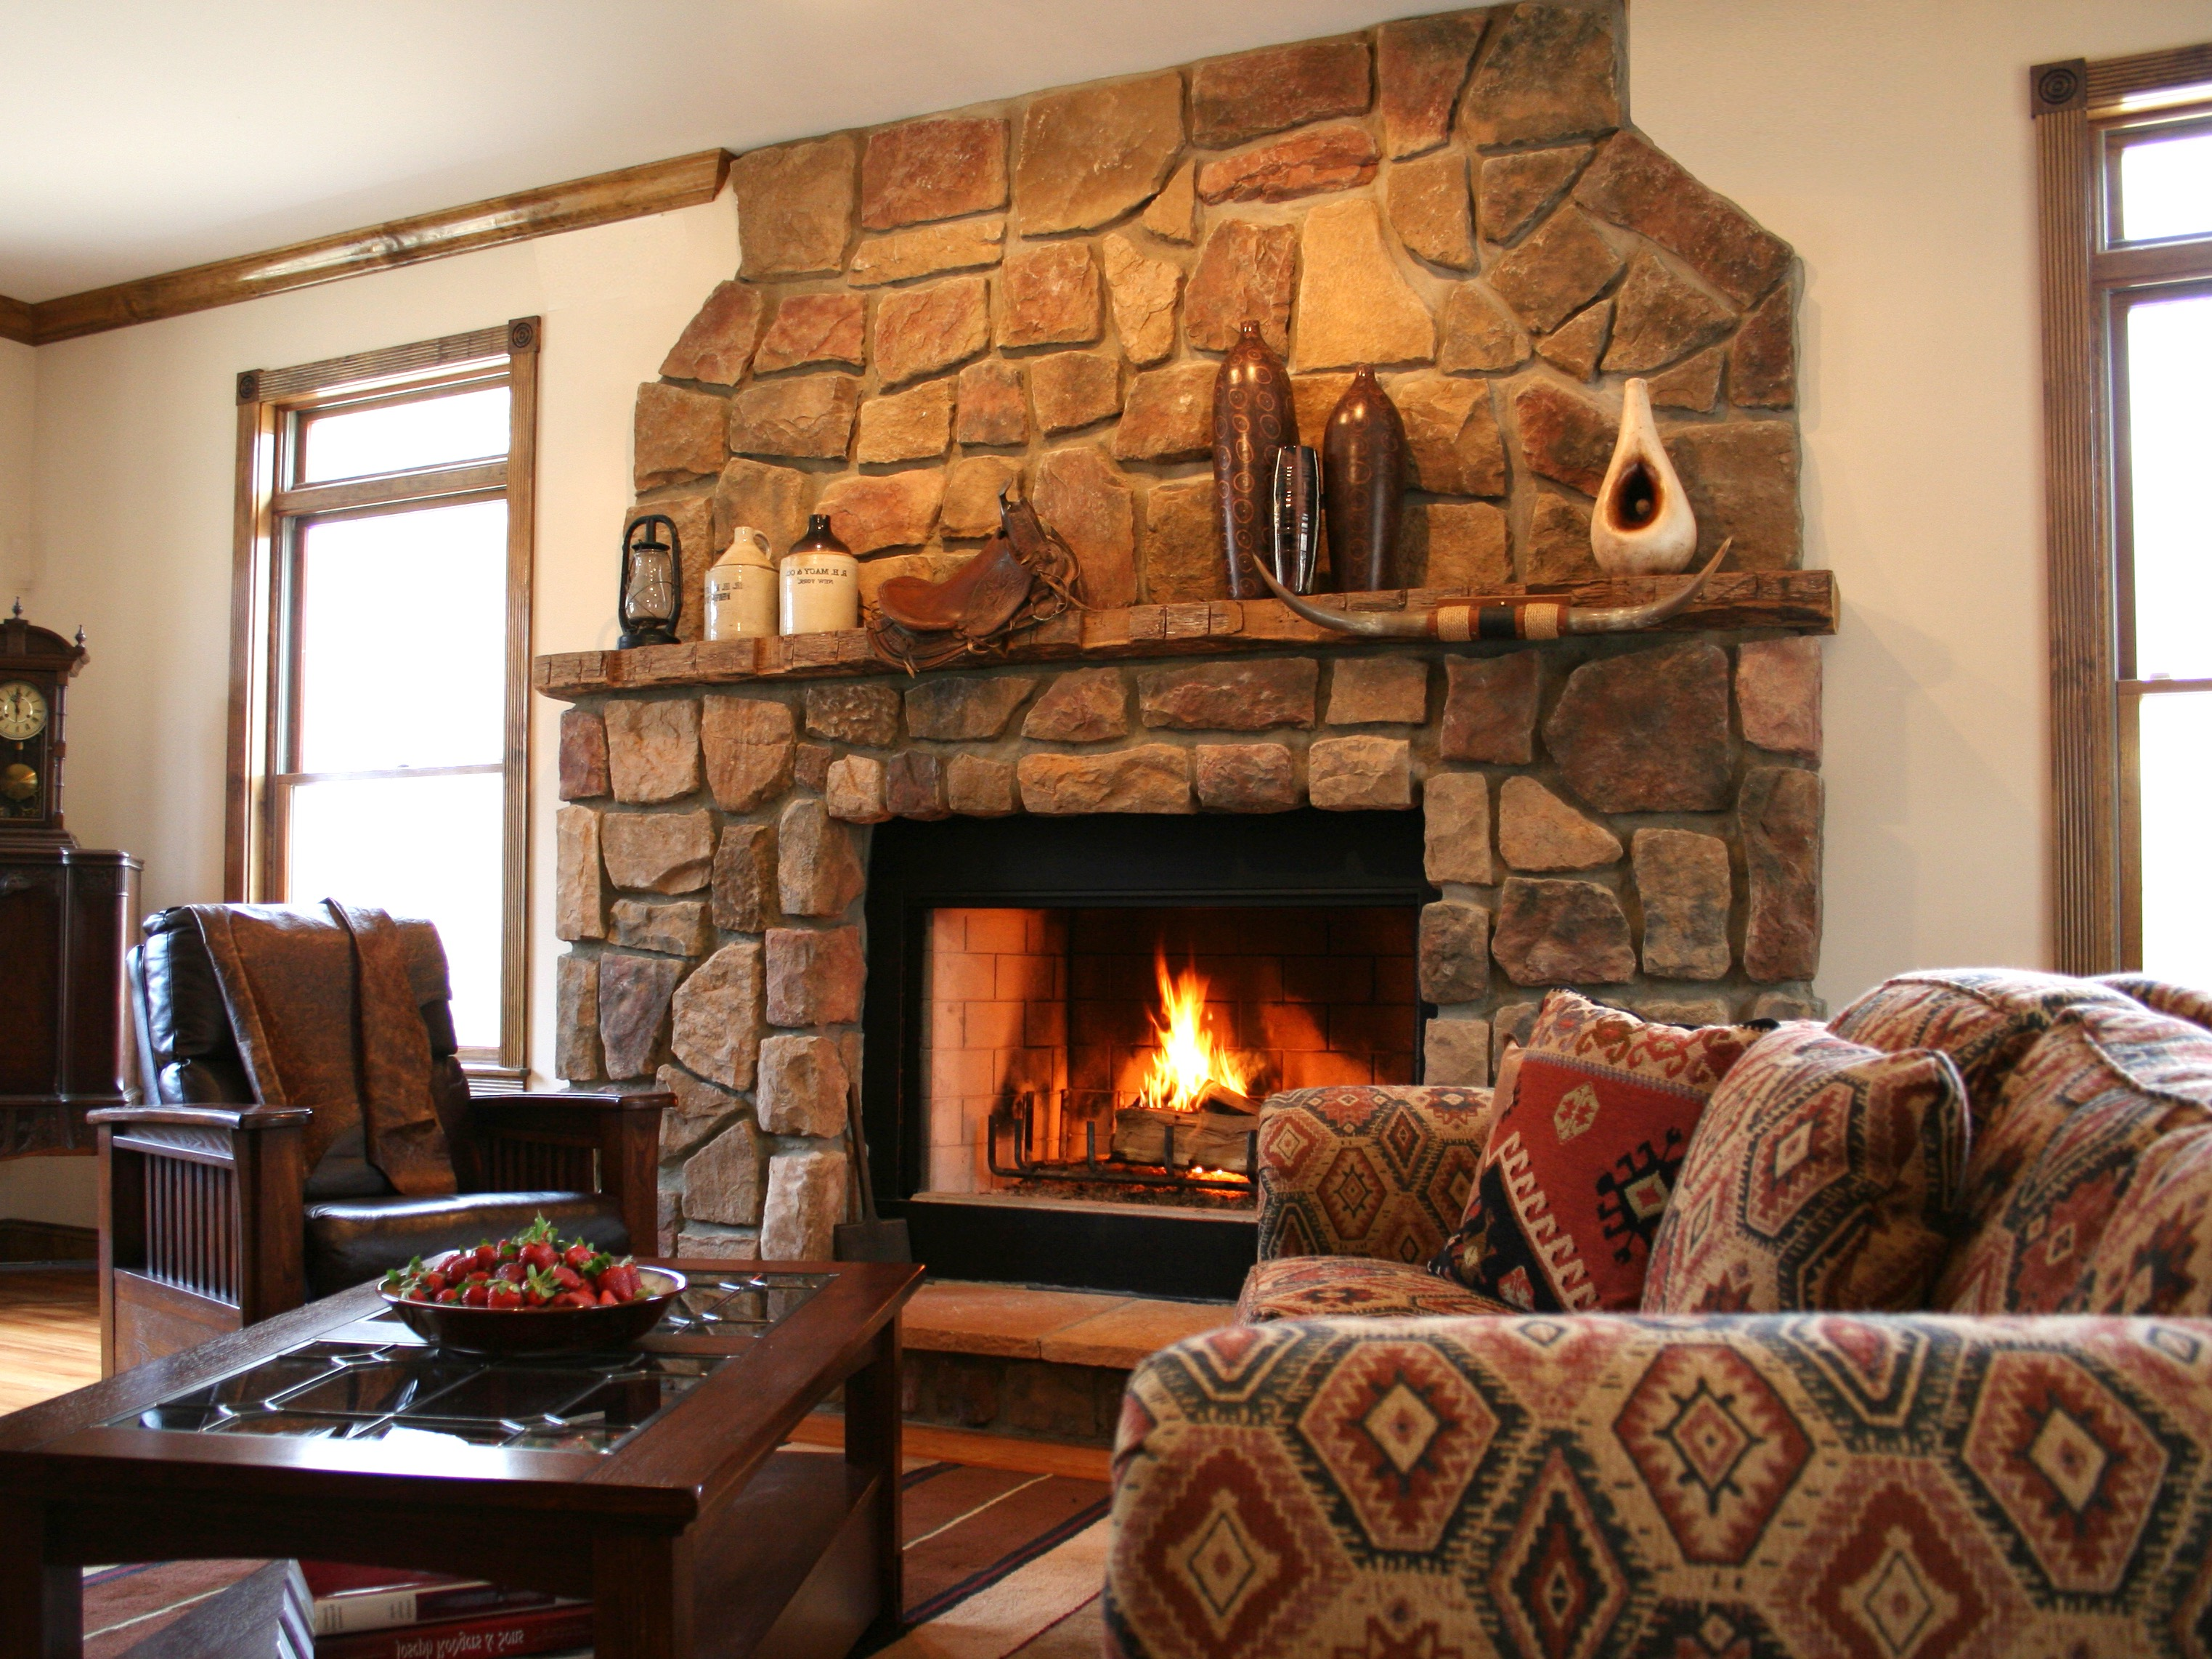 Rustic Western Living Room With Stone Fireplace (Image 10 of 18)